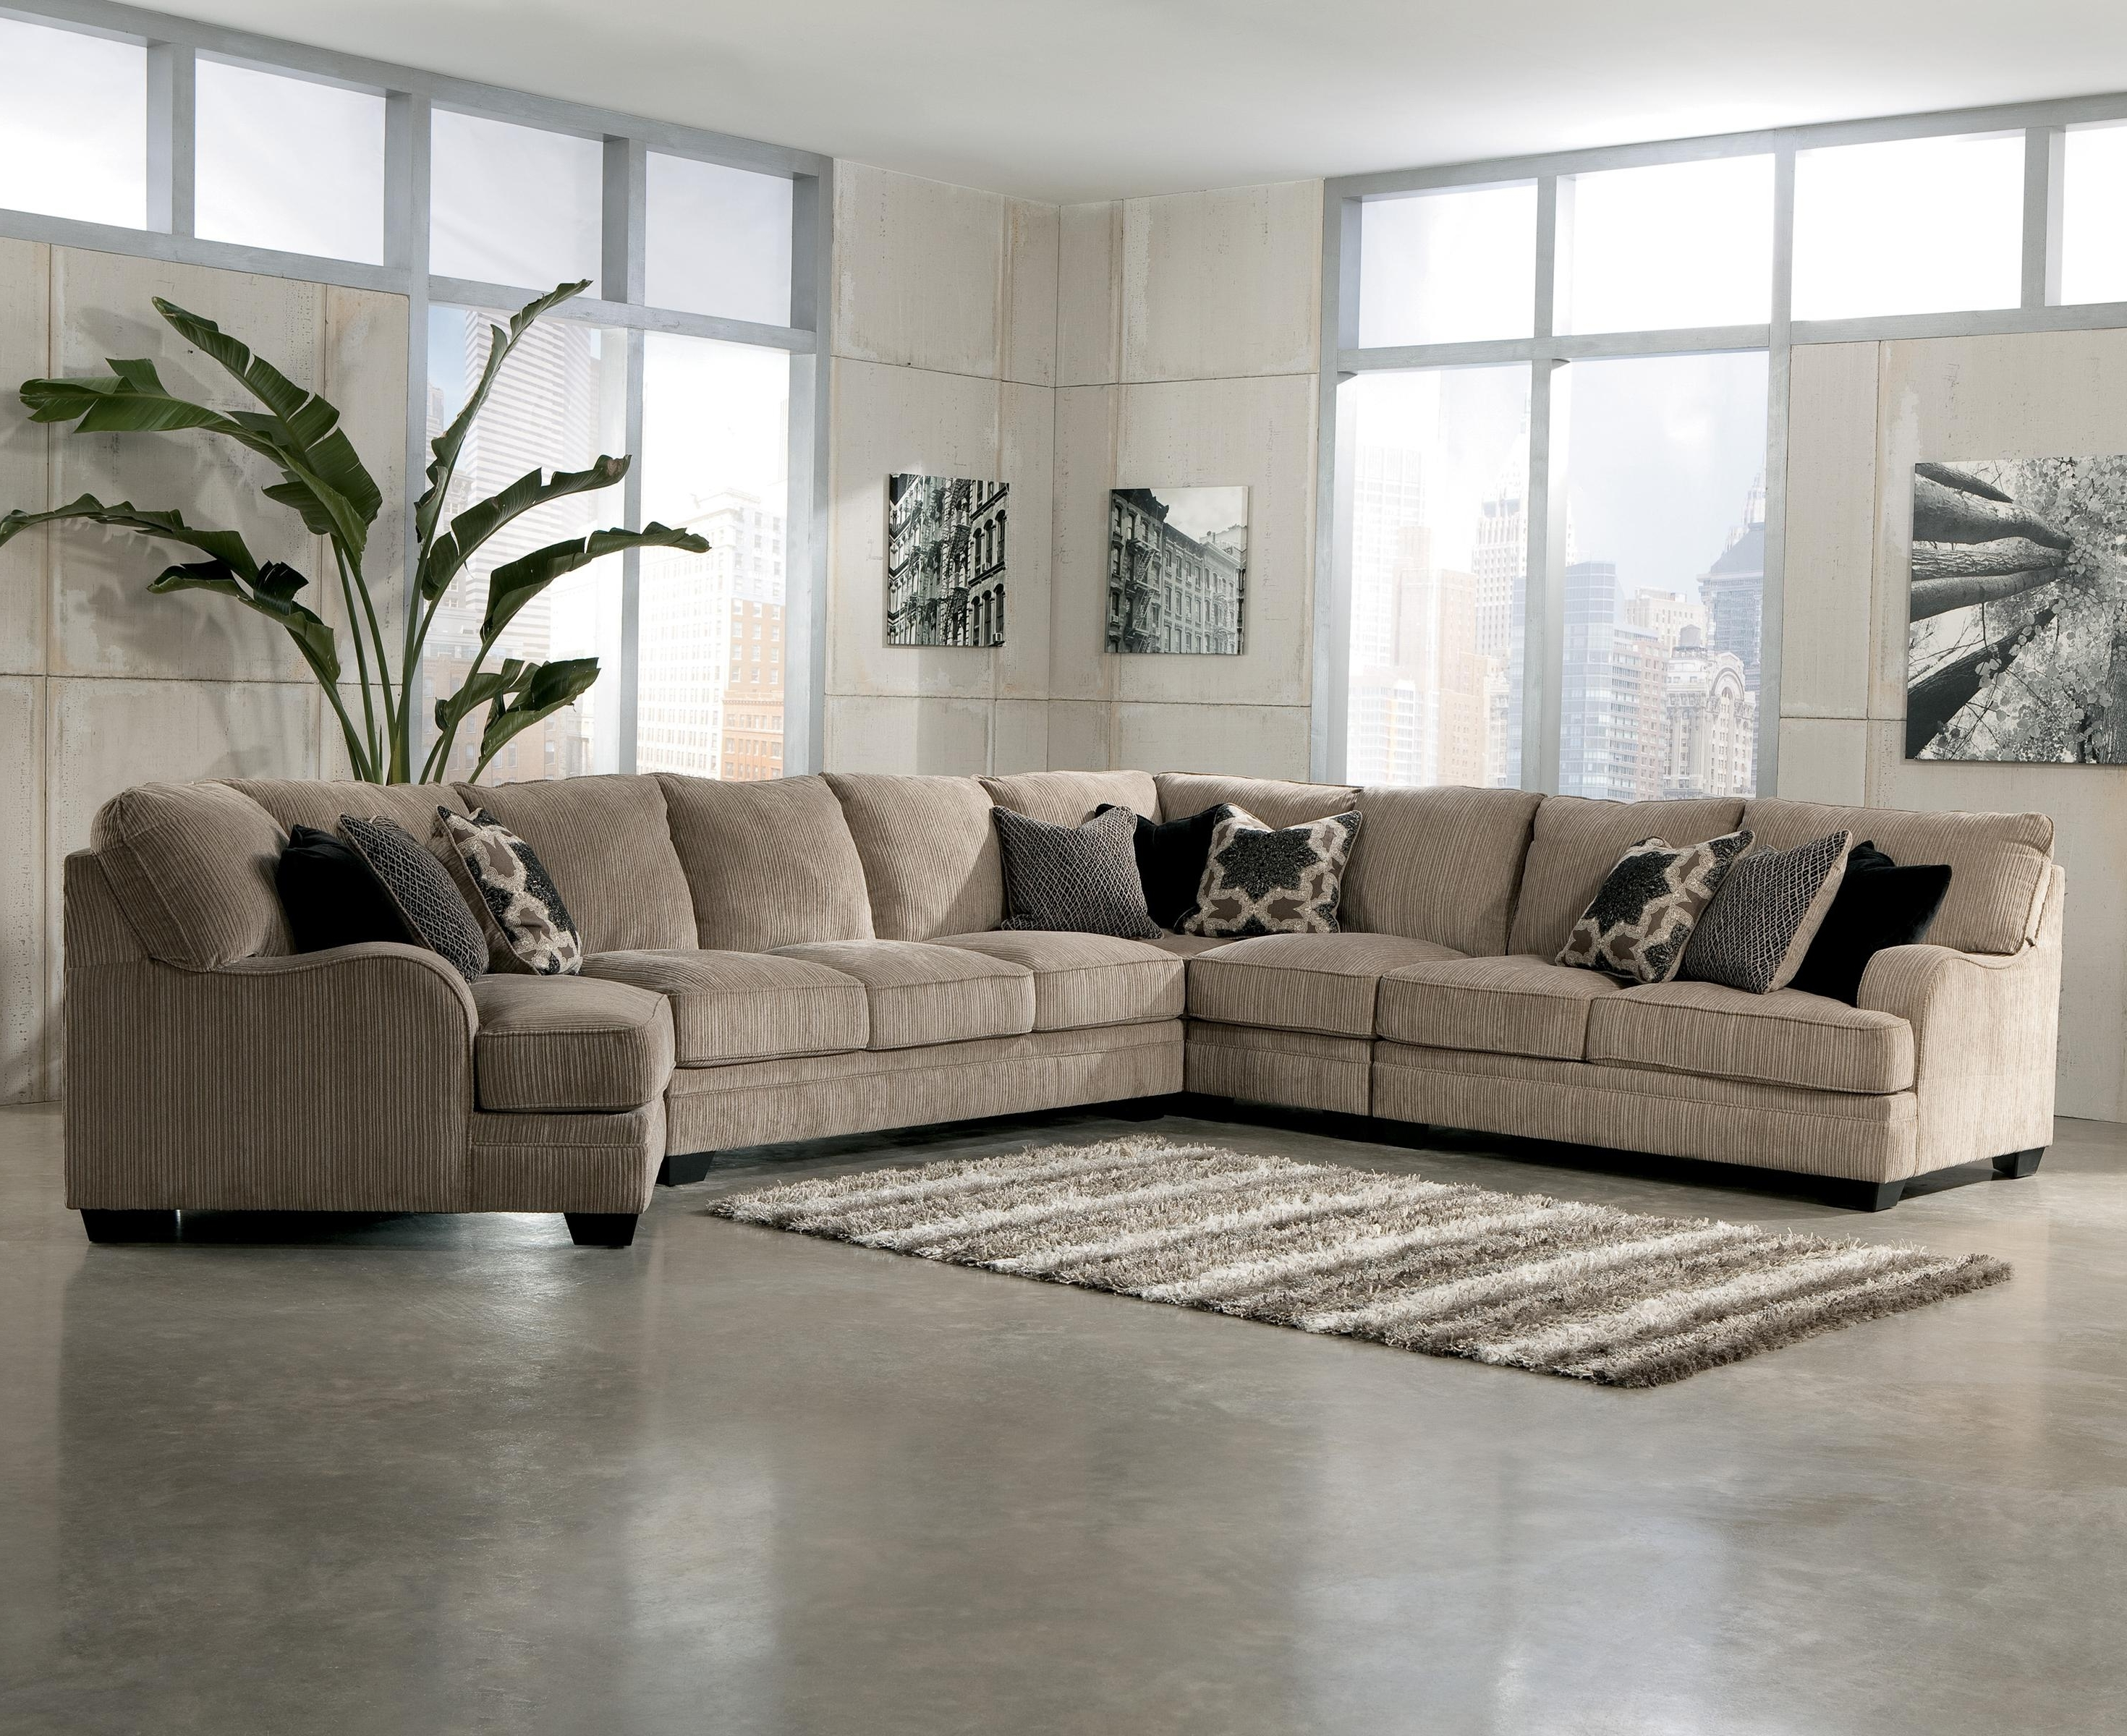 Most Recently Released Comfy Sectional Sofas Intended For Comfortable Cuddler Sofa For Elegant Living Room Sofas Design (View 13 of 15)